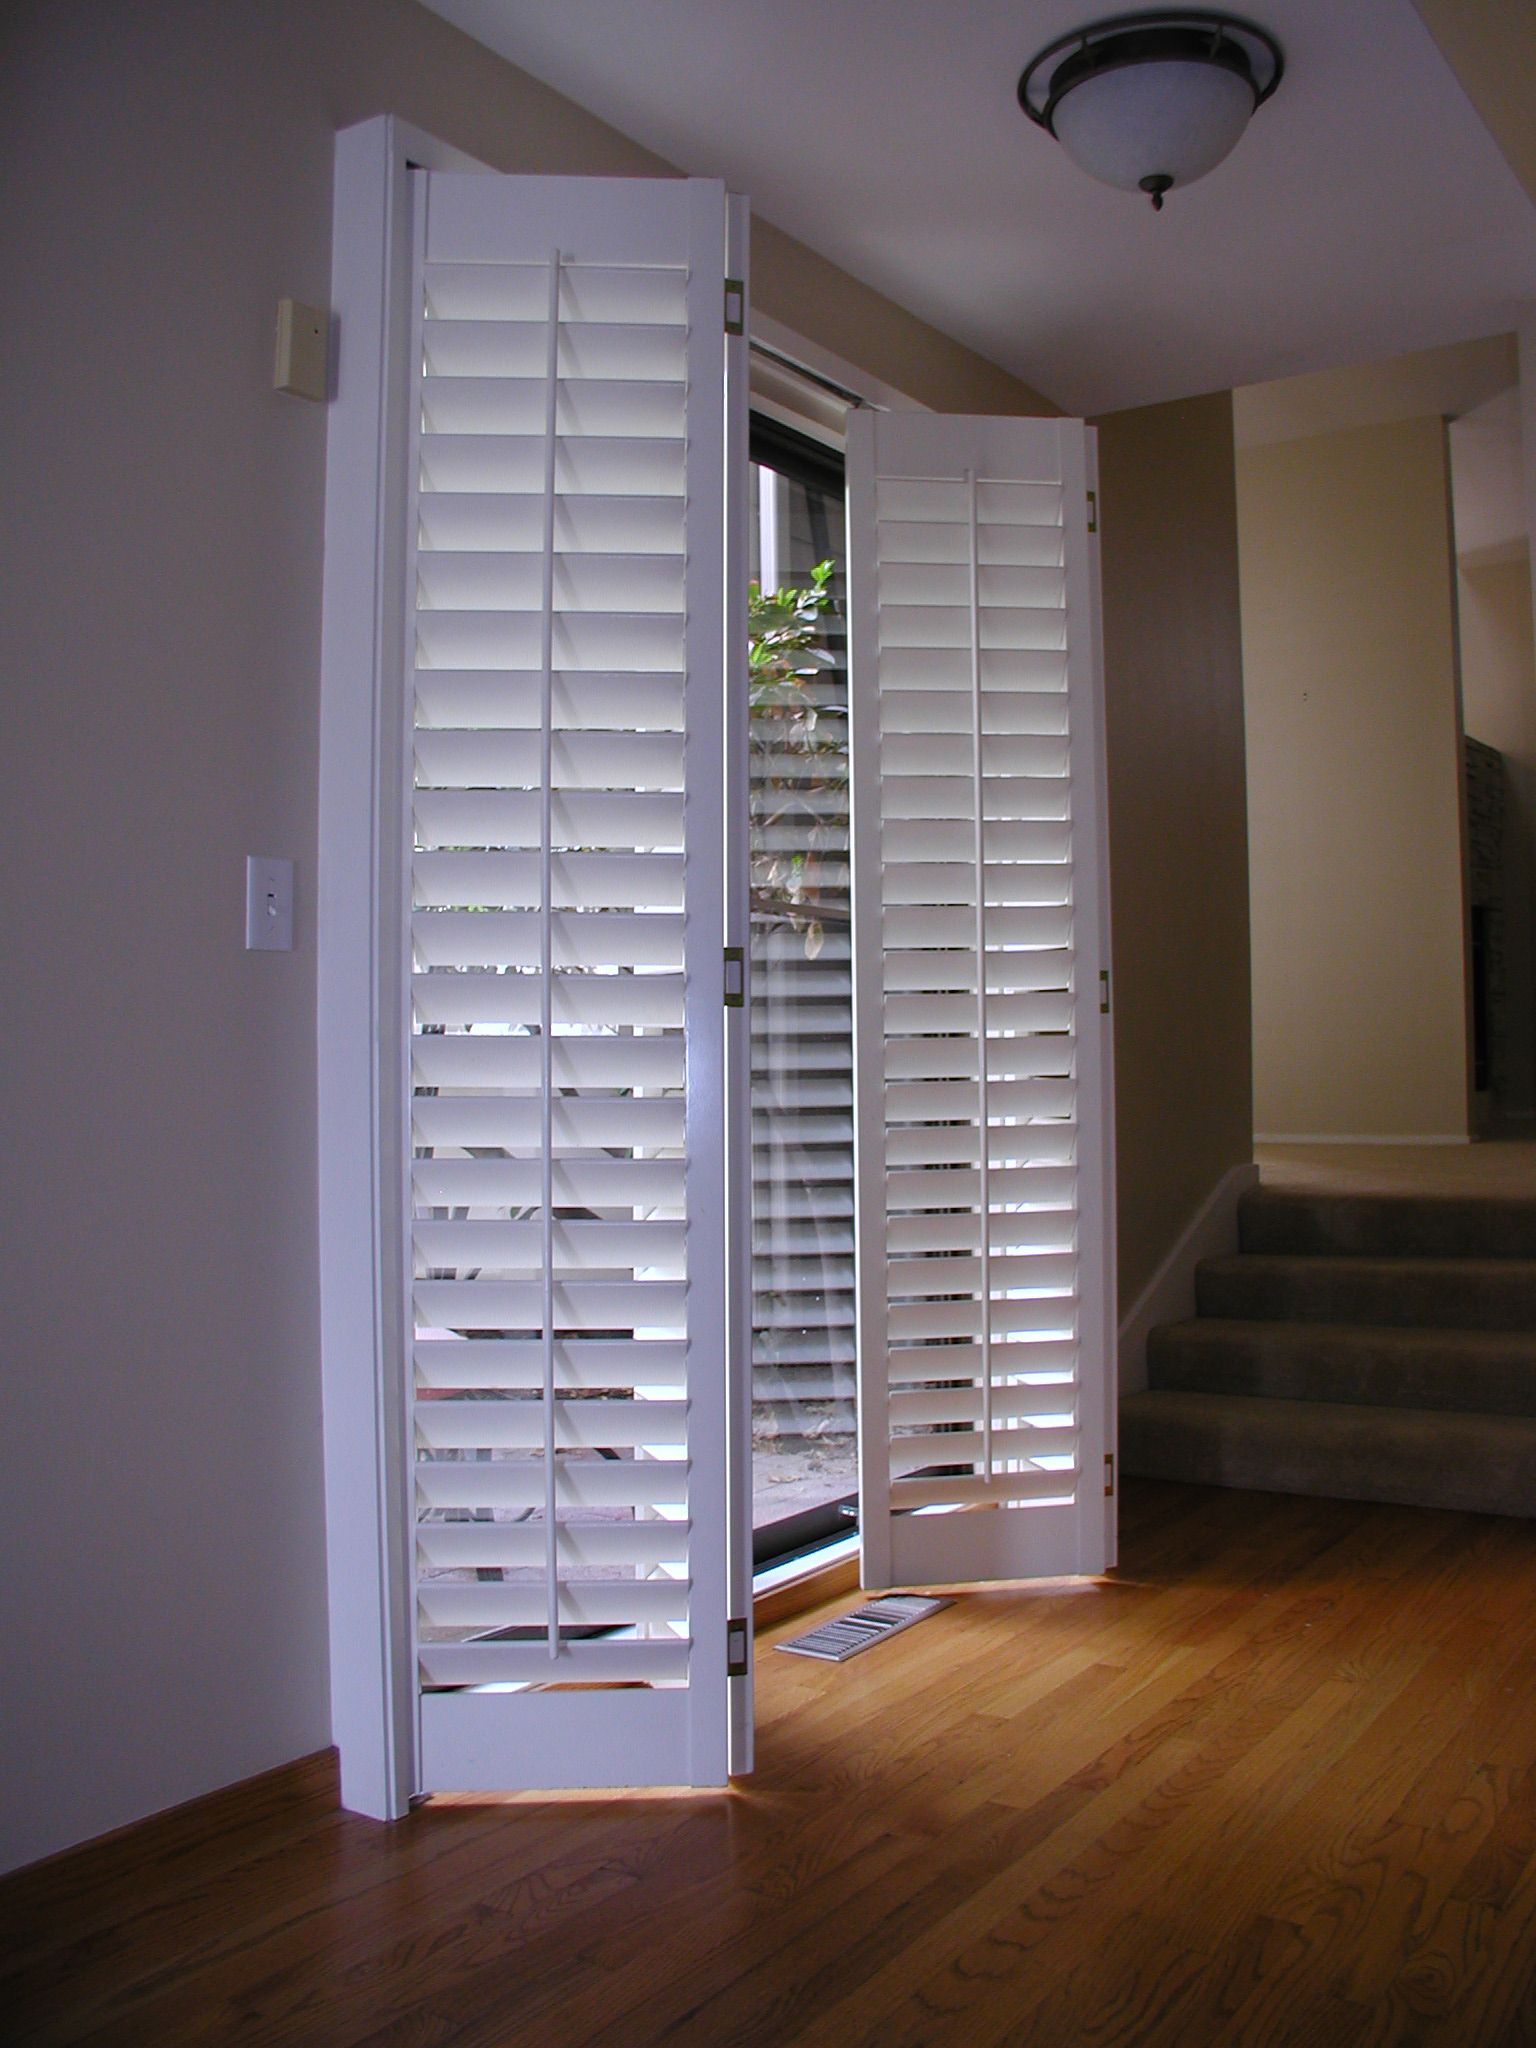 Beau Sliding Glass Door Shutters Are Both Gorgeous And Easy To Use! Click For A  Gallery Of Custom Bi Fold Shutters From StanfieldShutter.com